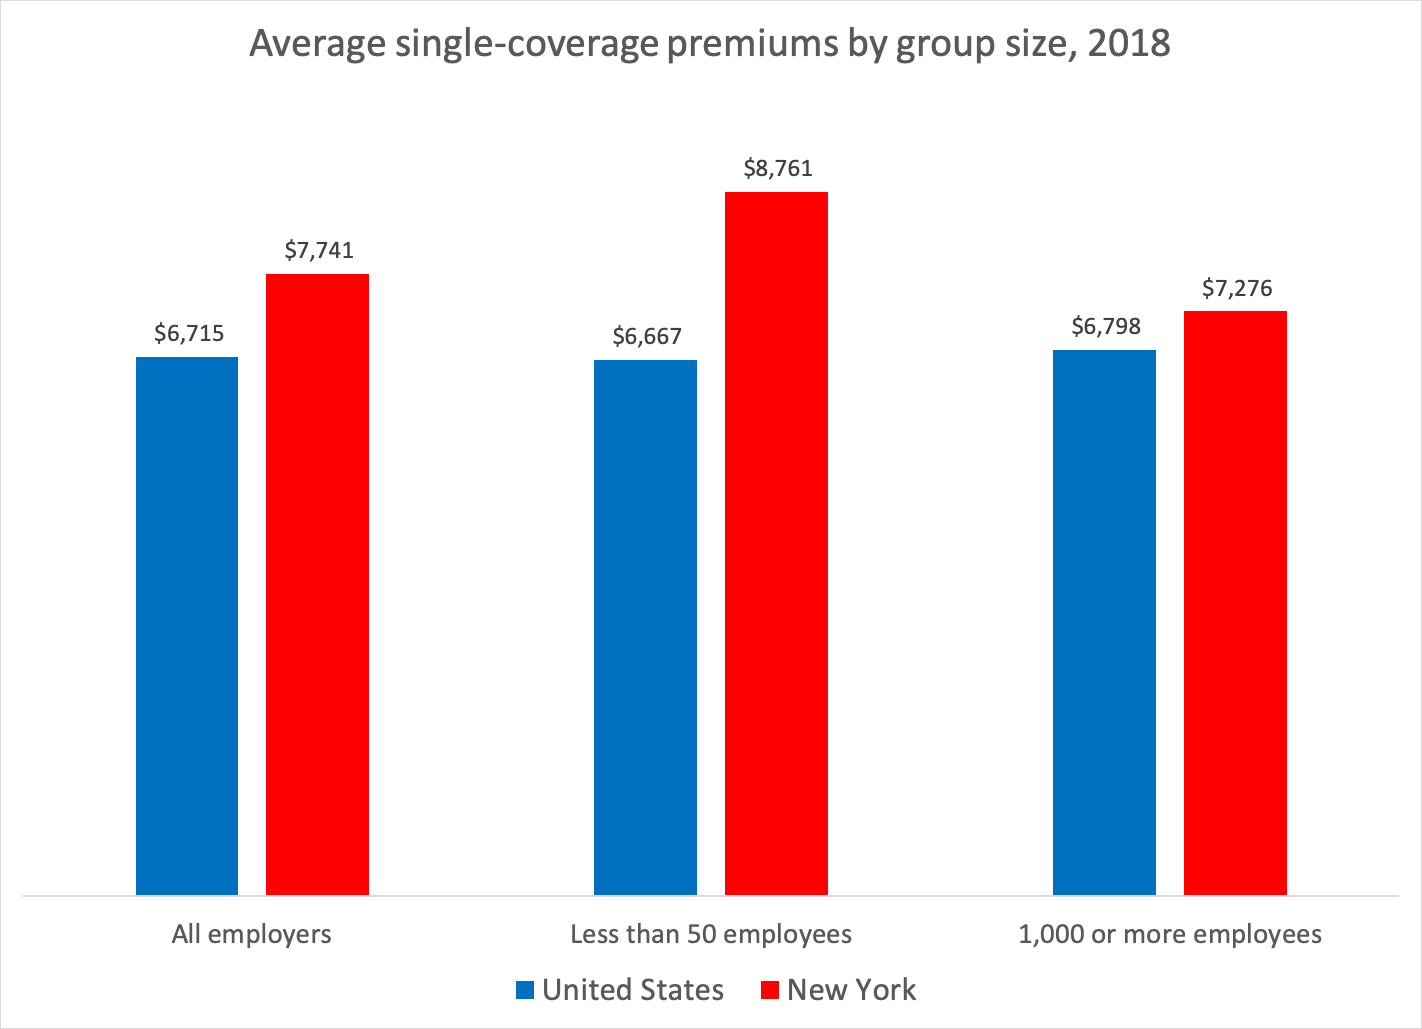 premiums-by-group-size-2018-4315407